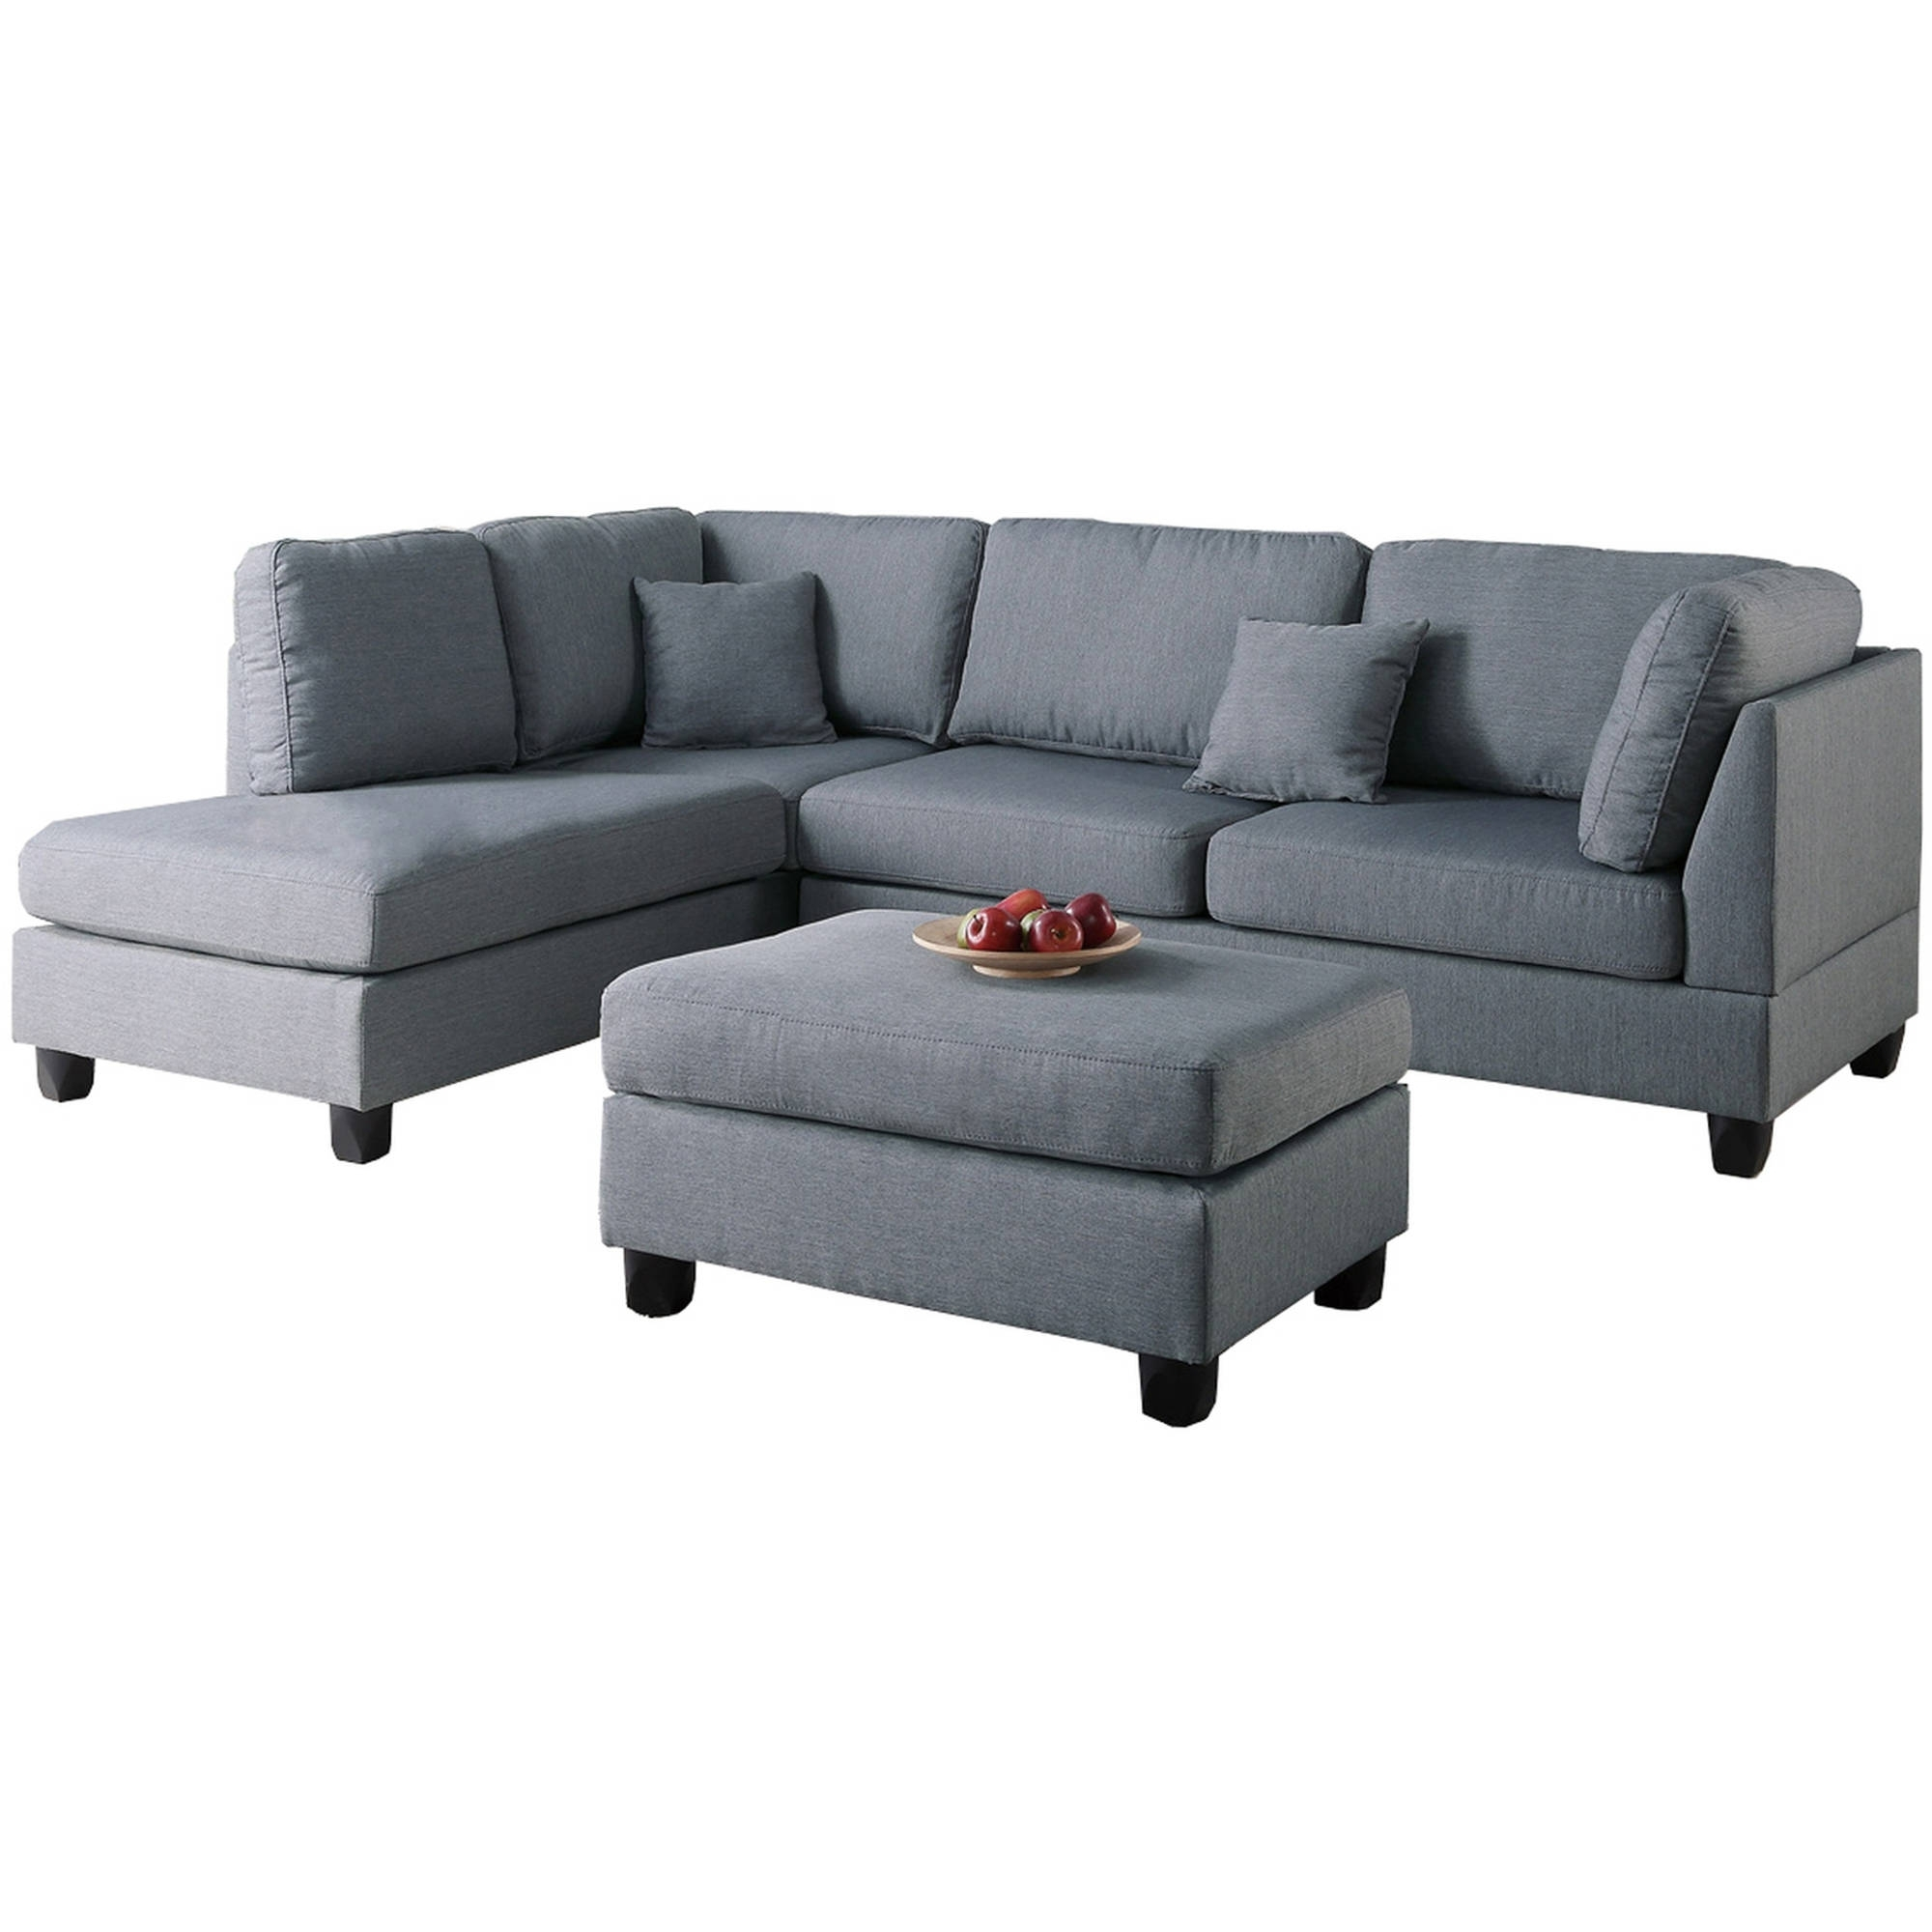 Sectional Sofas Under 200 Within Widely Used Living Room Furniture (View 16 of 20)